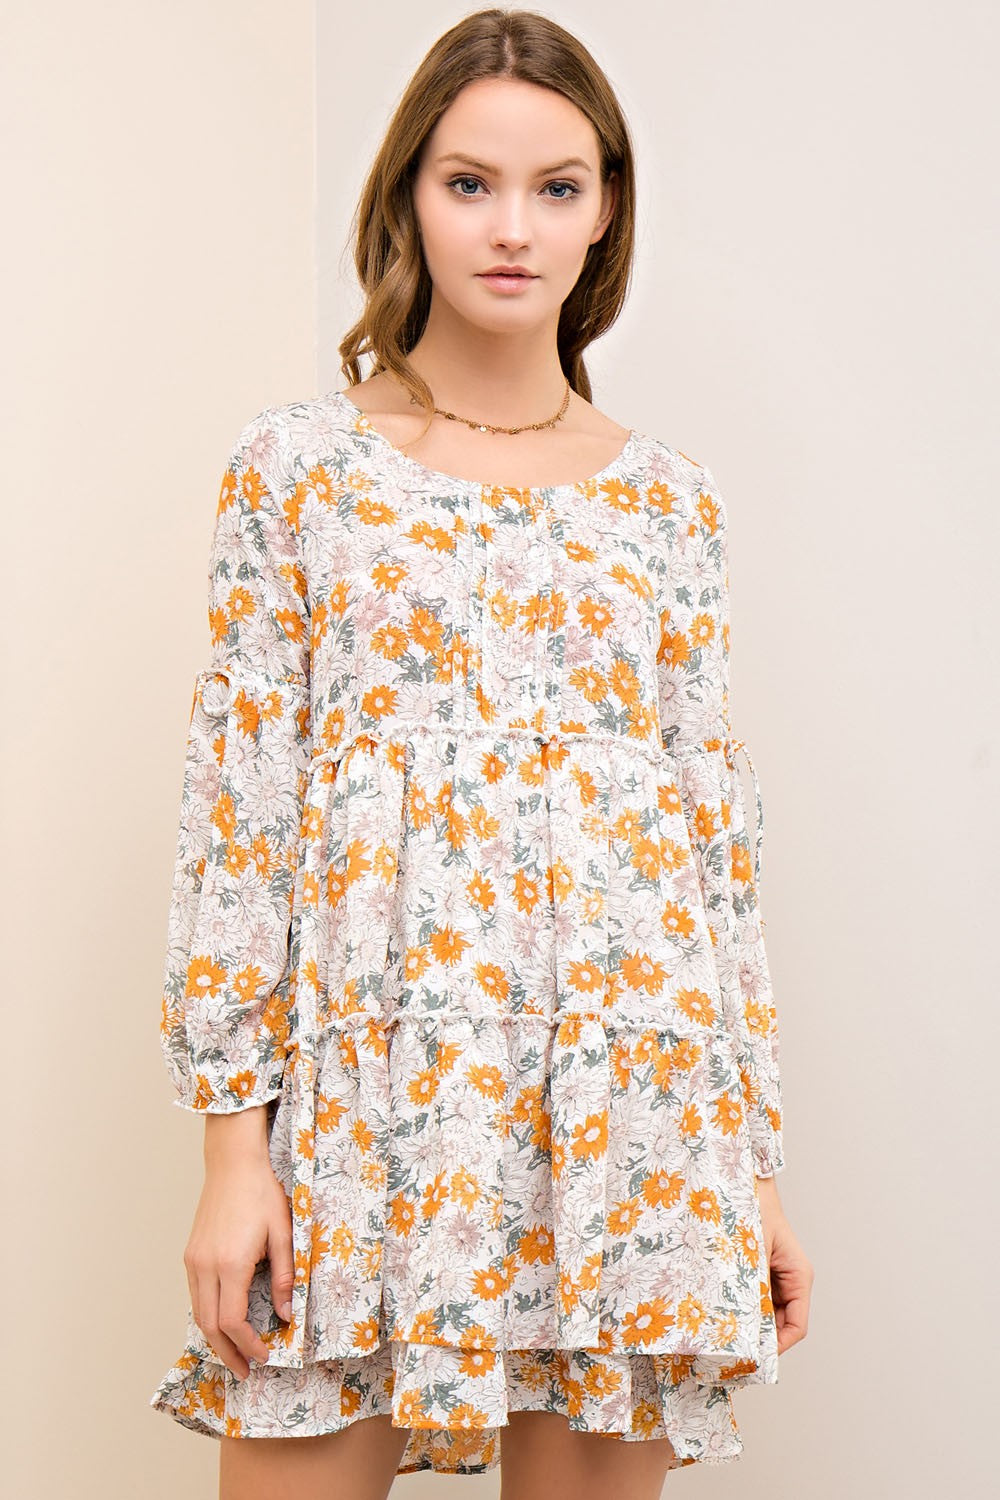 LONG SLEEVE FLORAL DRESS - Gypsie Souls